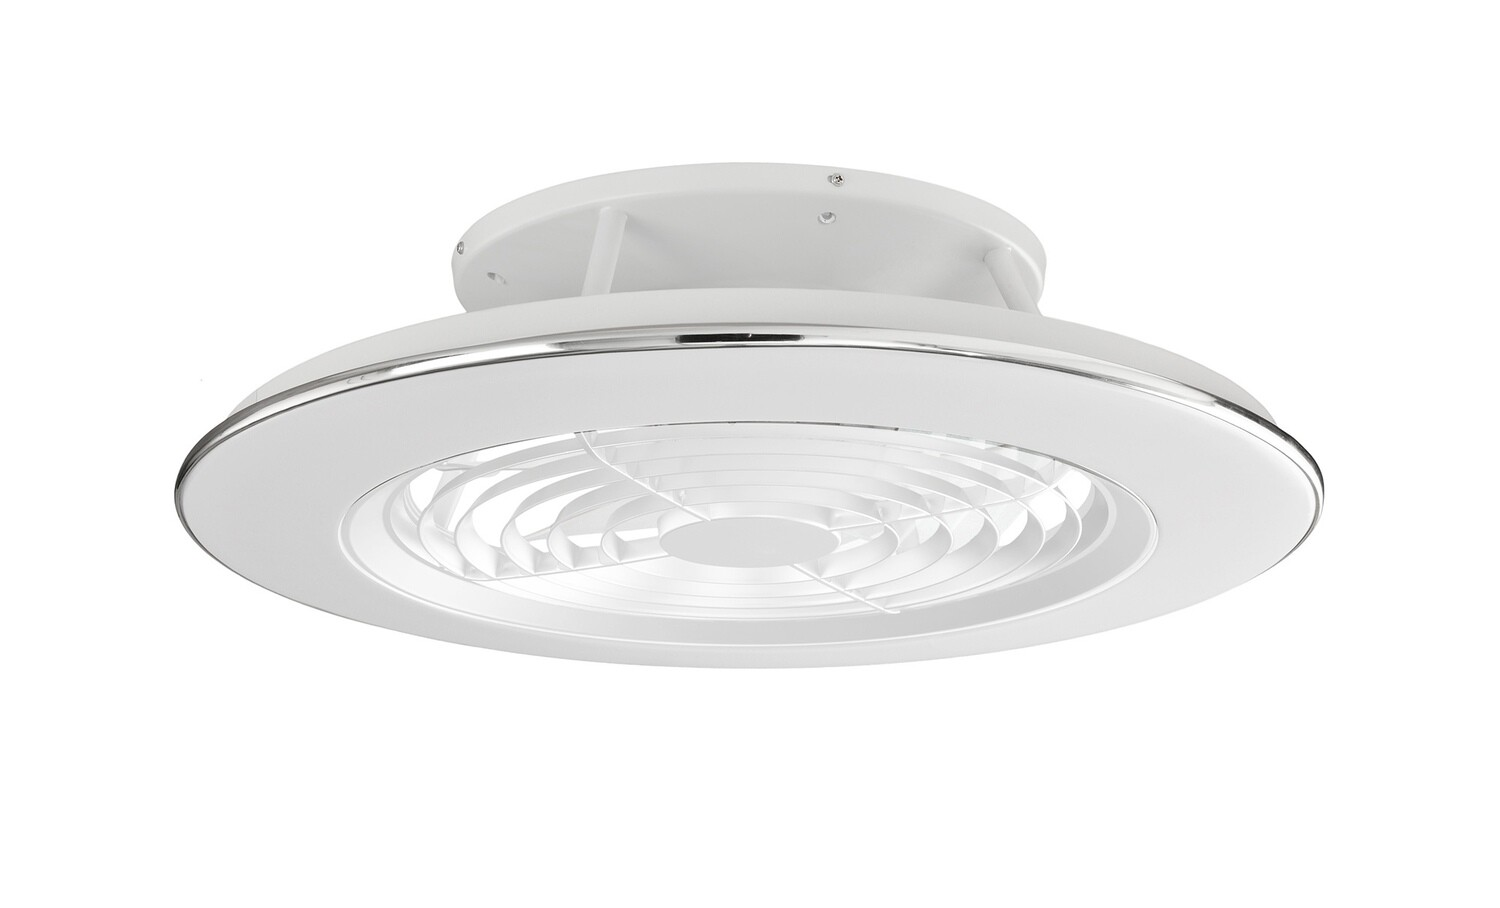 Alisio 70W LED Dimmable Ceiling Light With Built-In 35W DC Reversible Fan, White Finish c/w Remote Control and APP Control